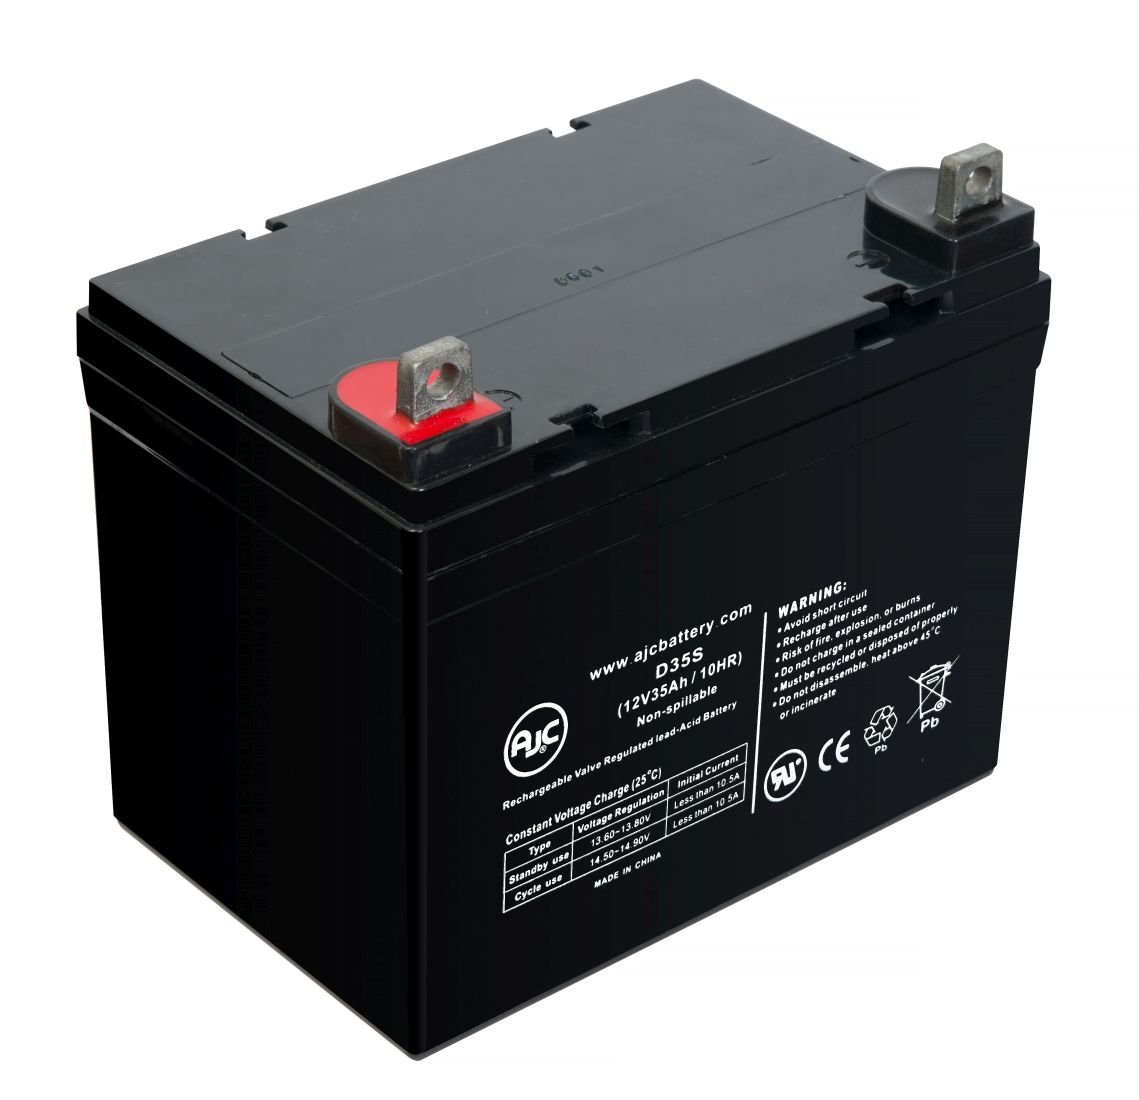 Amazon Hoveround MPV 5 12V 35Ah Wheelchair Battery This is – Batteries for Power Chairs